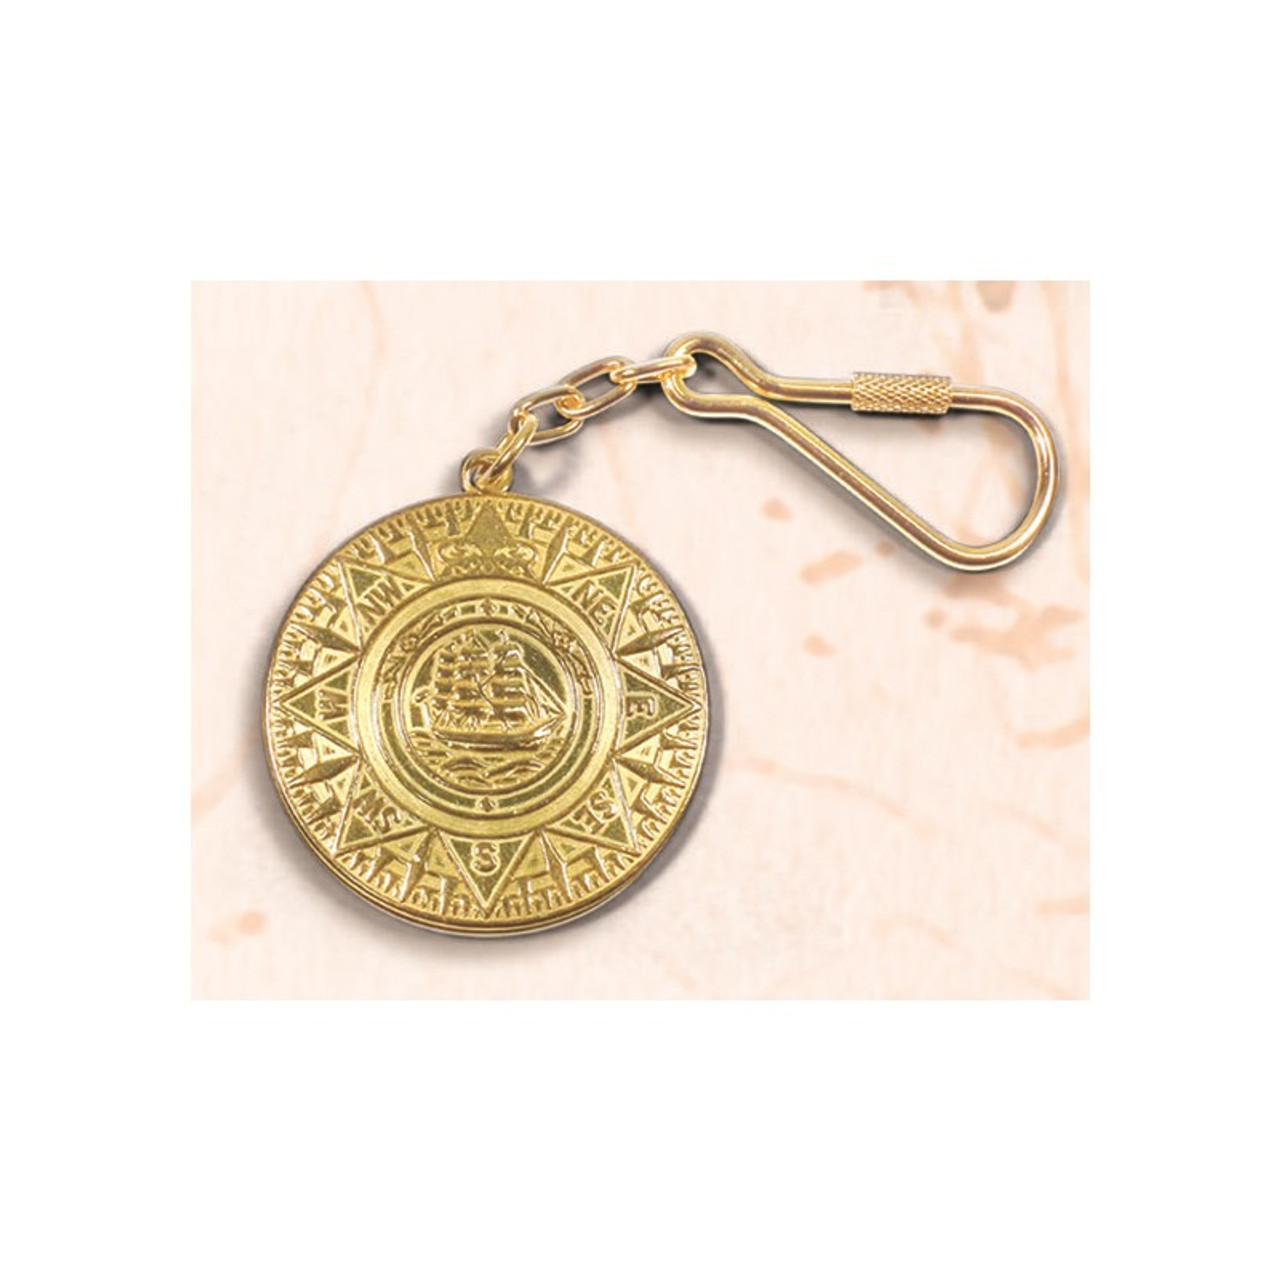 Brass Key Chain - Ship's Compass Medallion